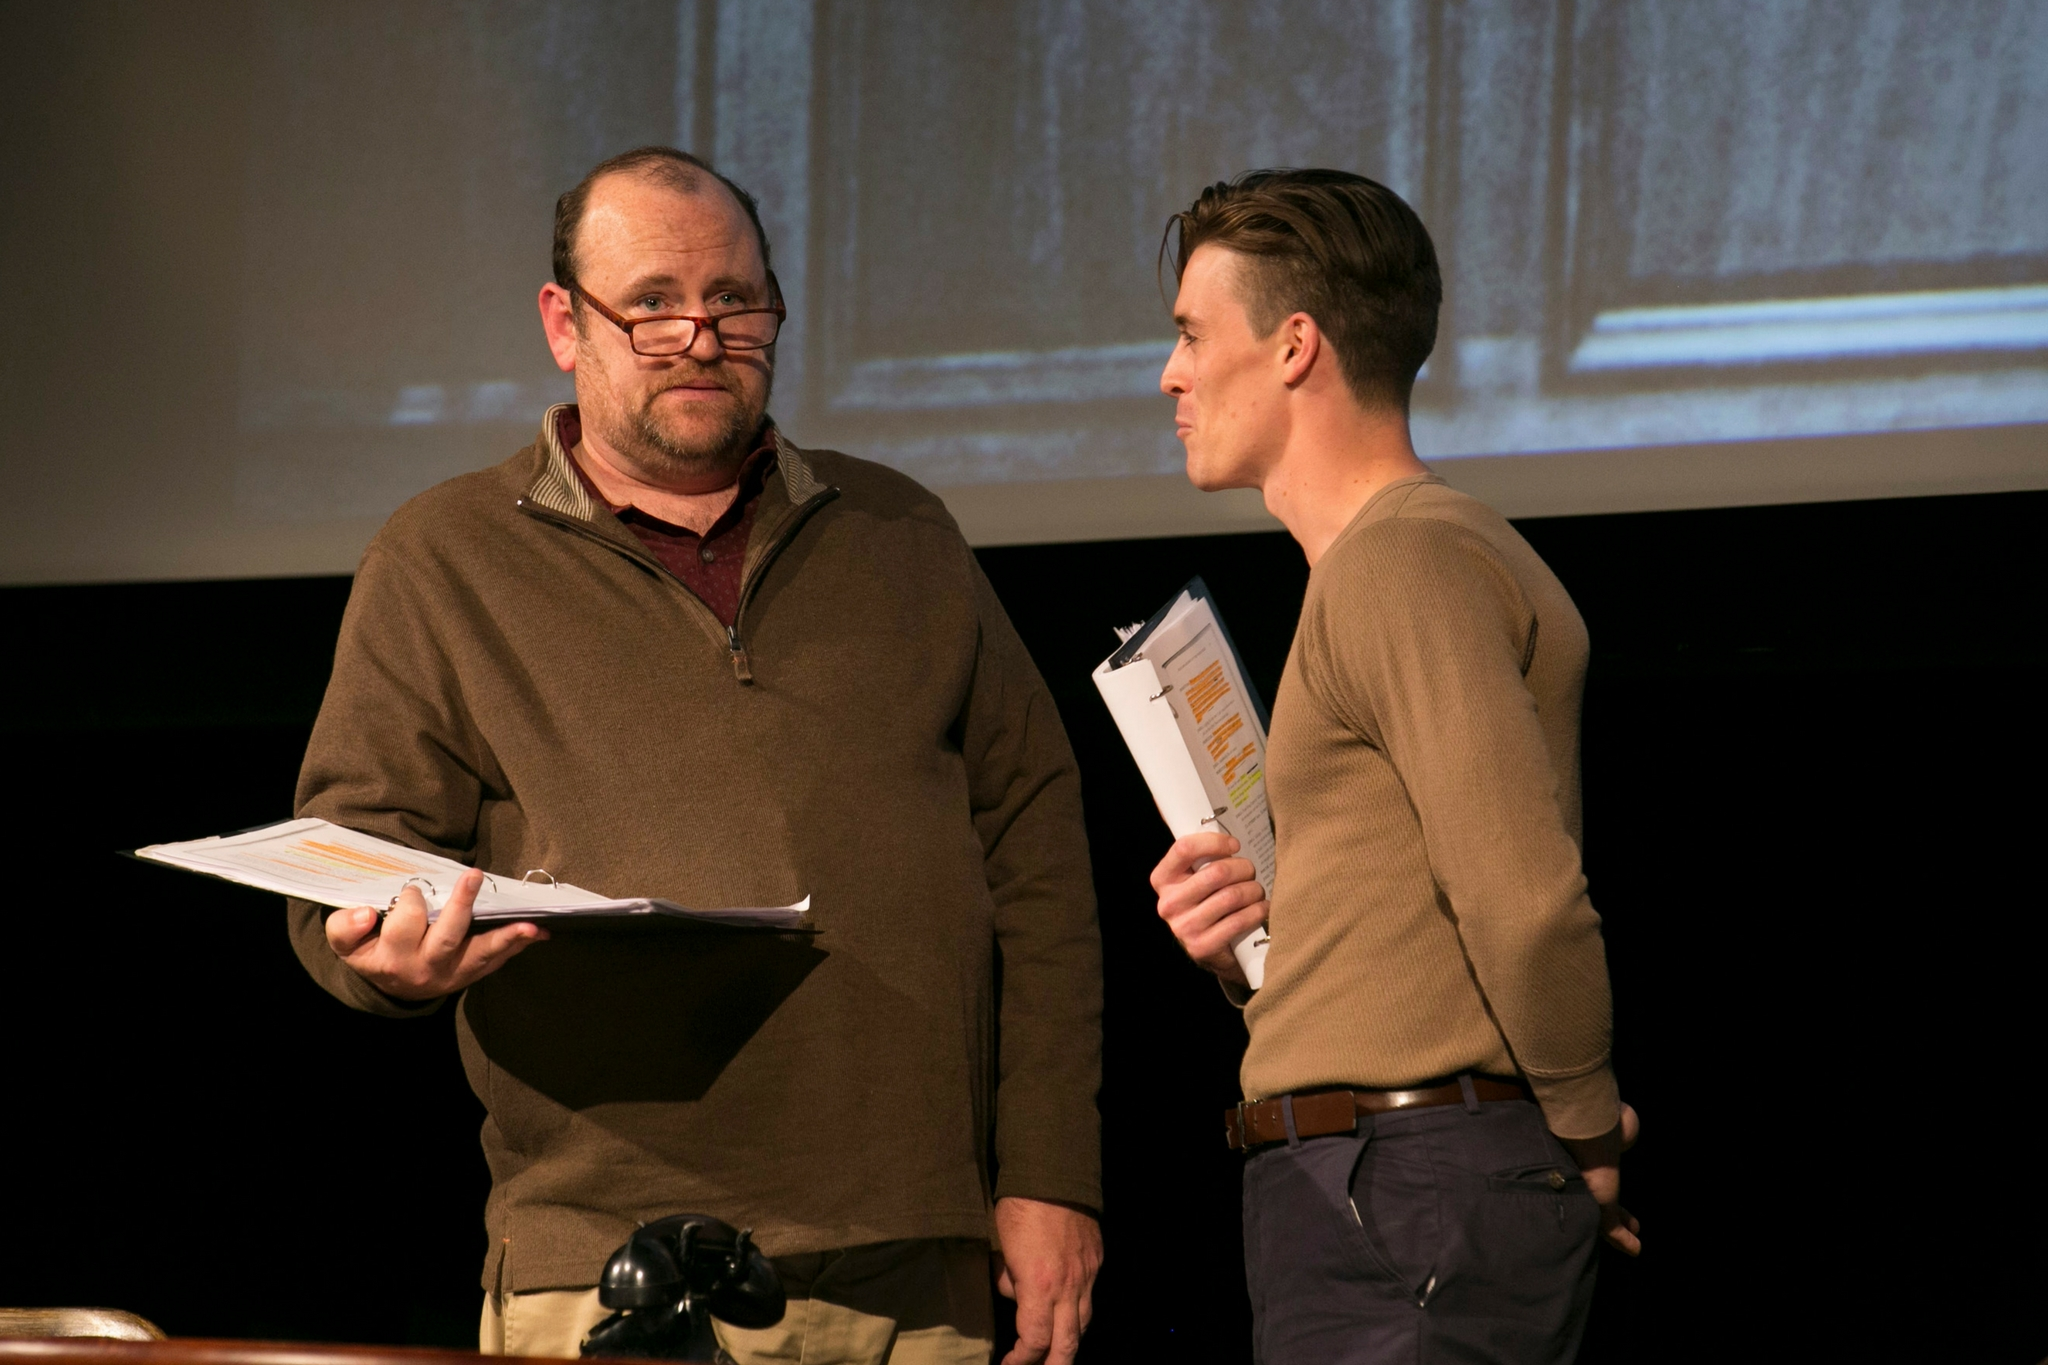 Brandon Whitehead (Judge A) and Michael Underhill (Prosecutor) in In Search of Justice, Theatre in the Rough, 2017-Photo by Evgenia Eliseeva